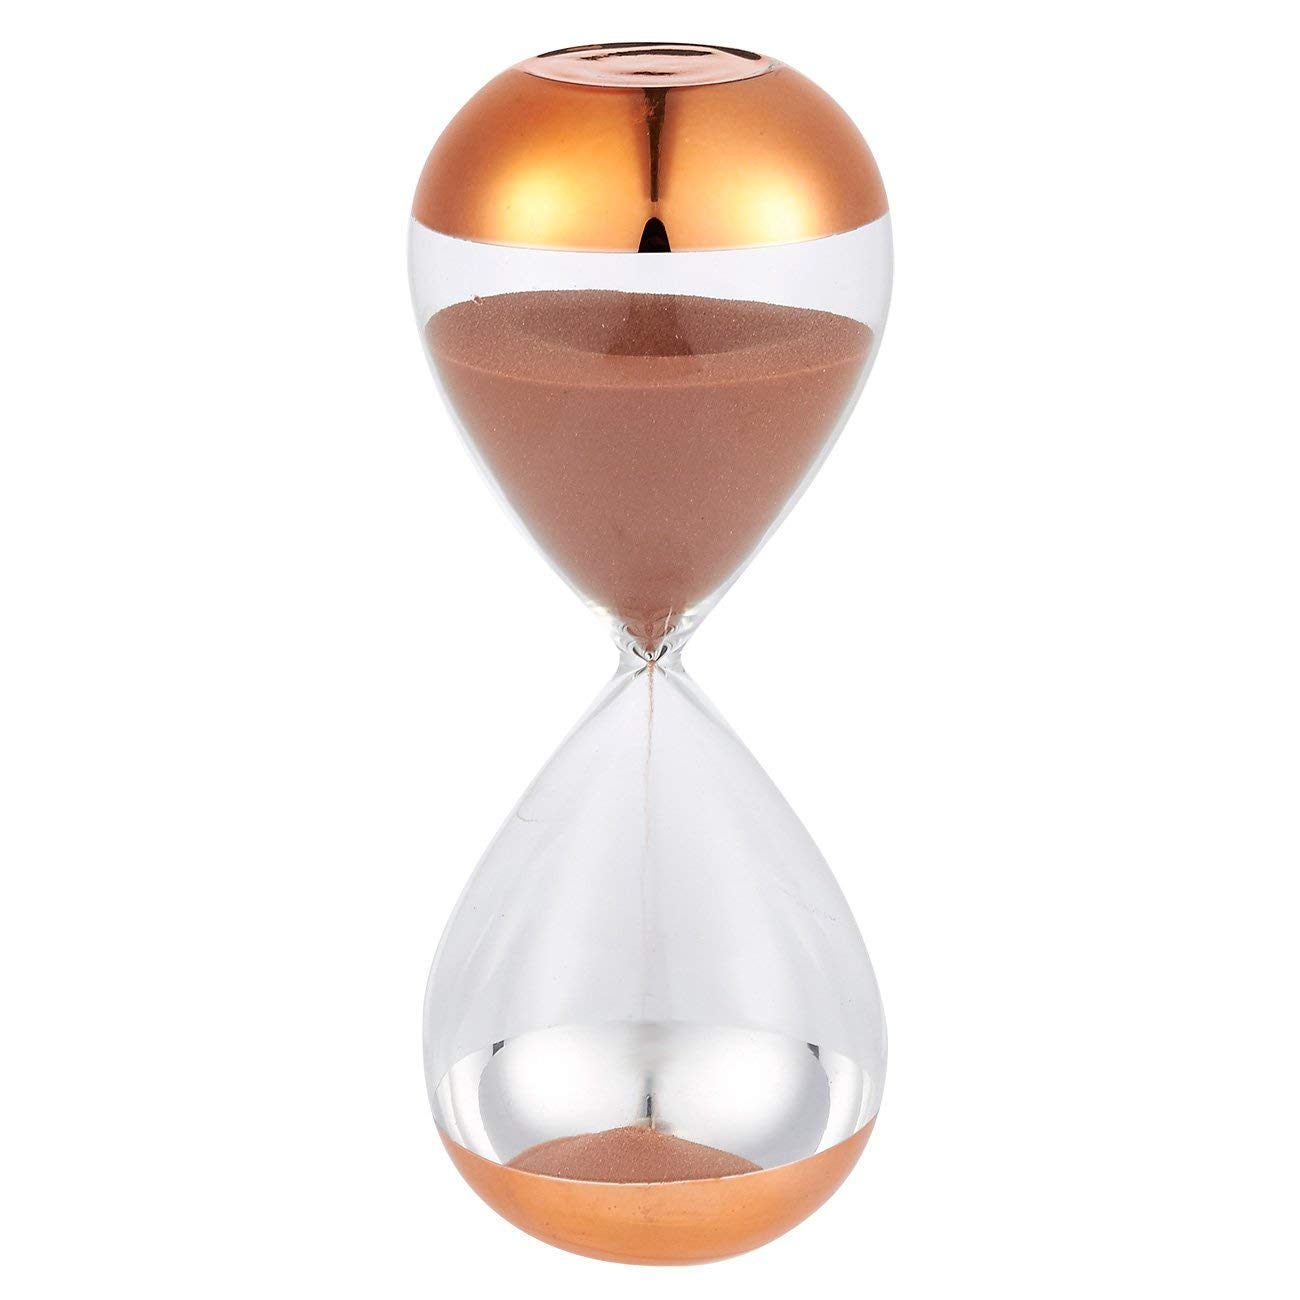 rose gold hourglass